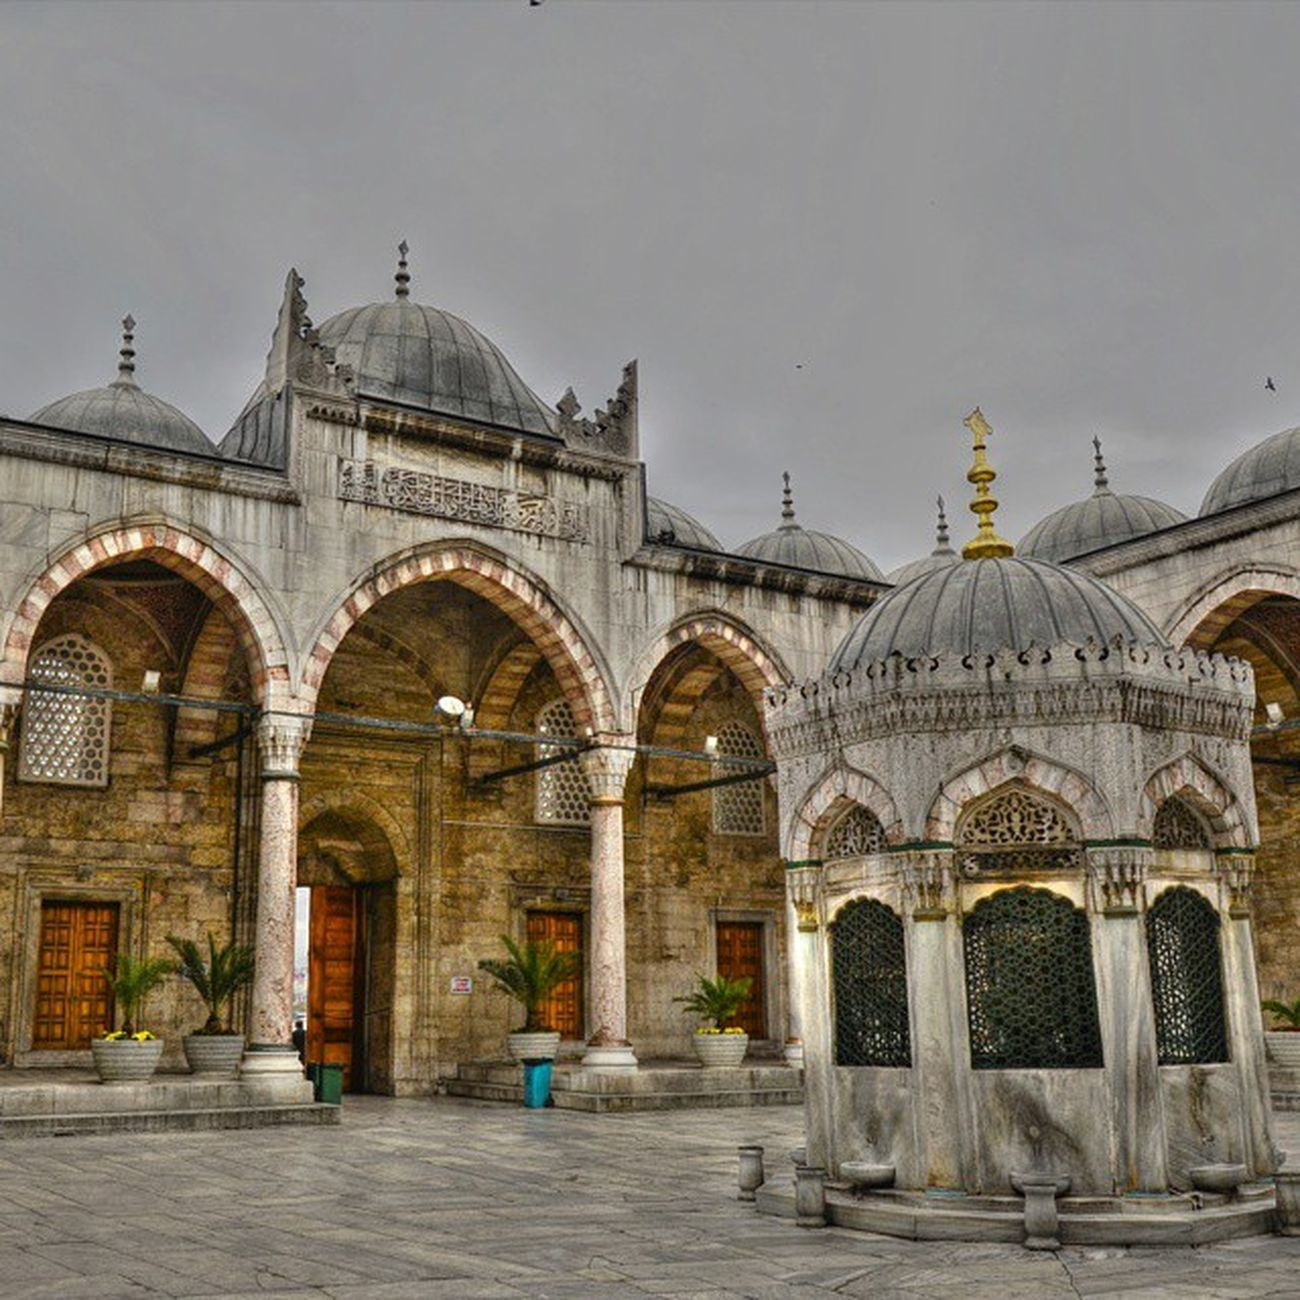 World_besthdr Best_buildings_hdr World_in_cultures Turkobjektif_hdr Ig_fotograf_art Hdr_spain Lucky_hdr Hdr_Serbia Worldcolours_hdr Thehub_hdr Pocket_hdr Hdr_for_all Hdr_ita Wings_world Fotofanatics_hdr Hdr_photogram Hdr_city_ Turkey_reward Www_hdr Hdr_and_sunsets Mobile_hdr Kings_hdr Loves_istanbul Turkportal_hdr Queen_hdr pictureoftheday instapic instagood folow4folow